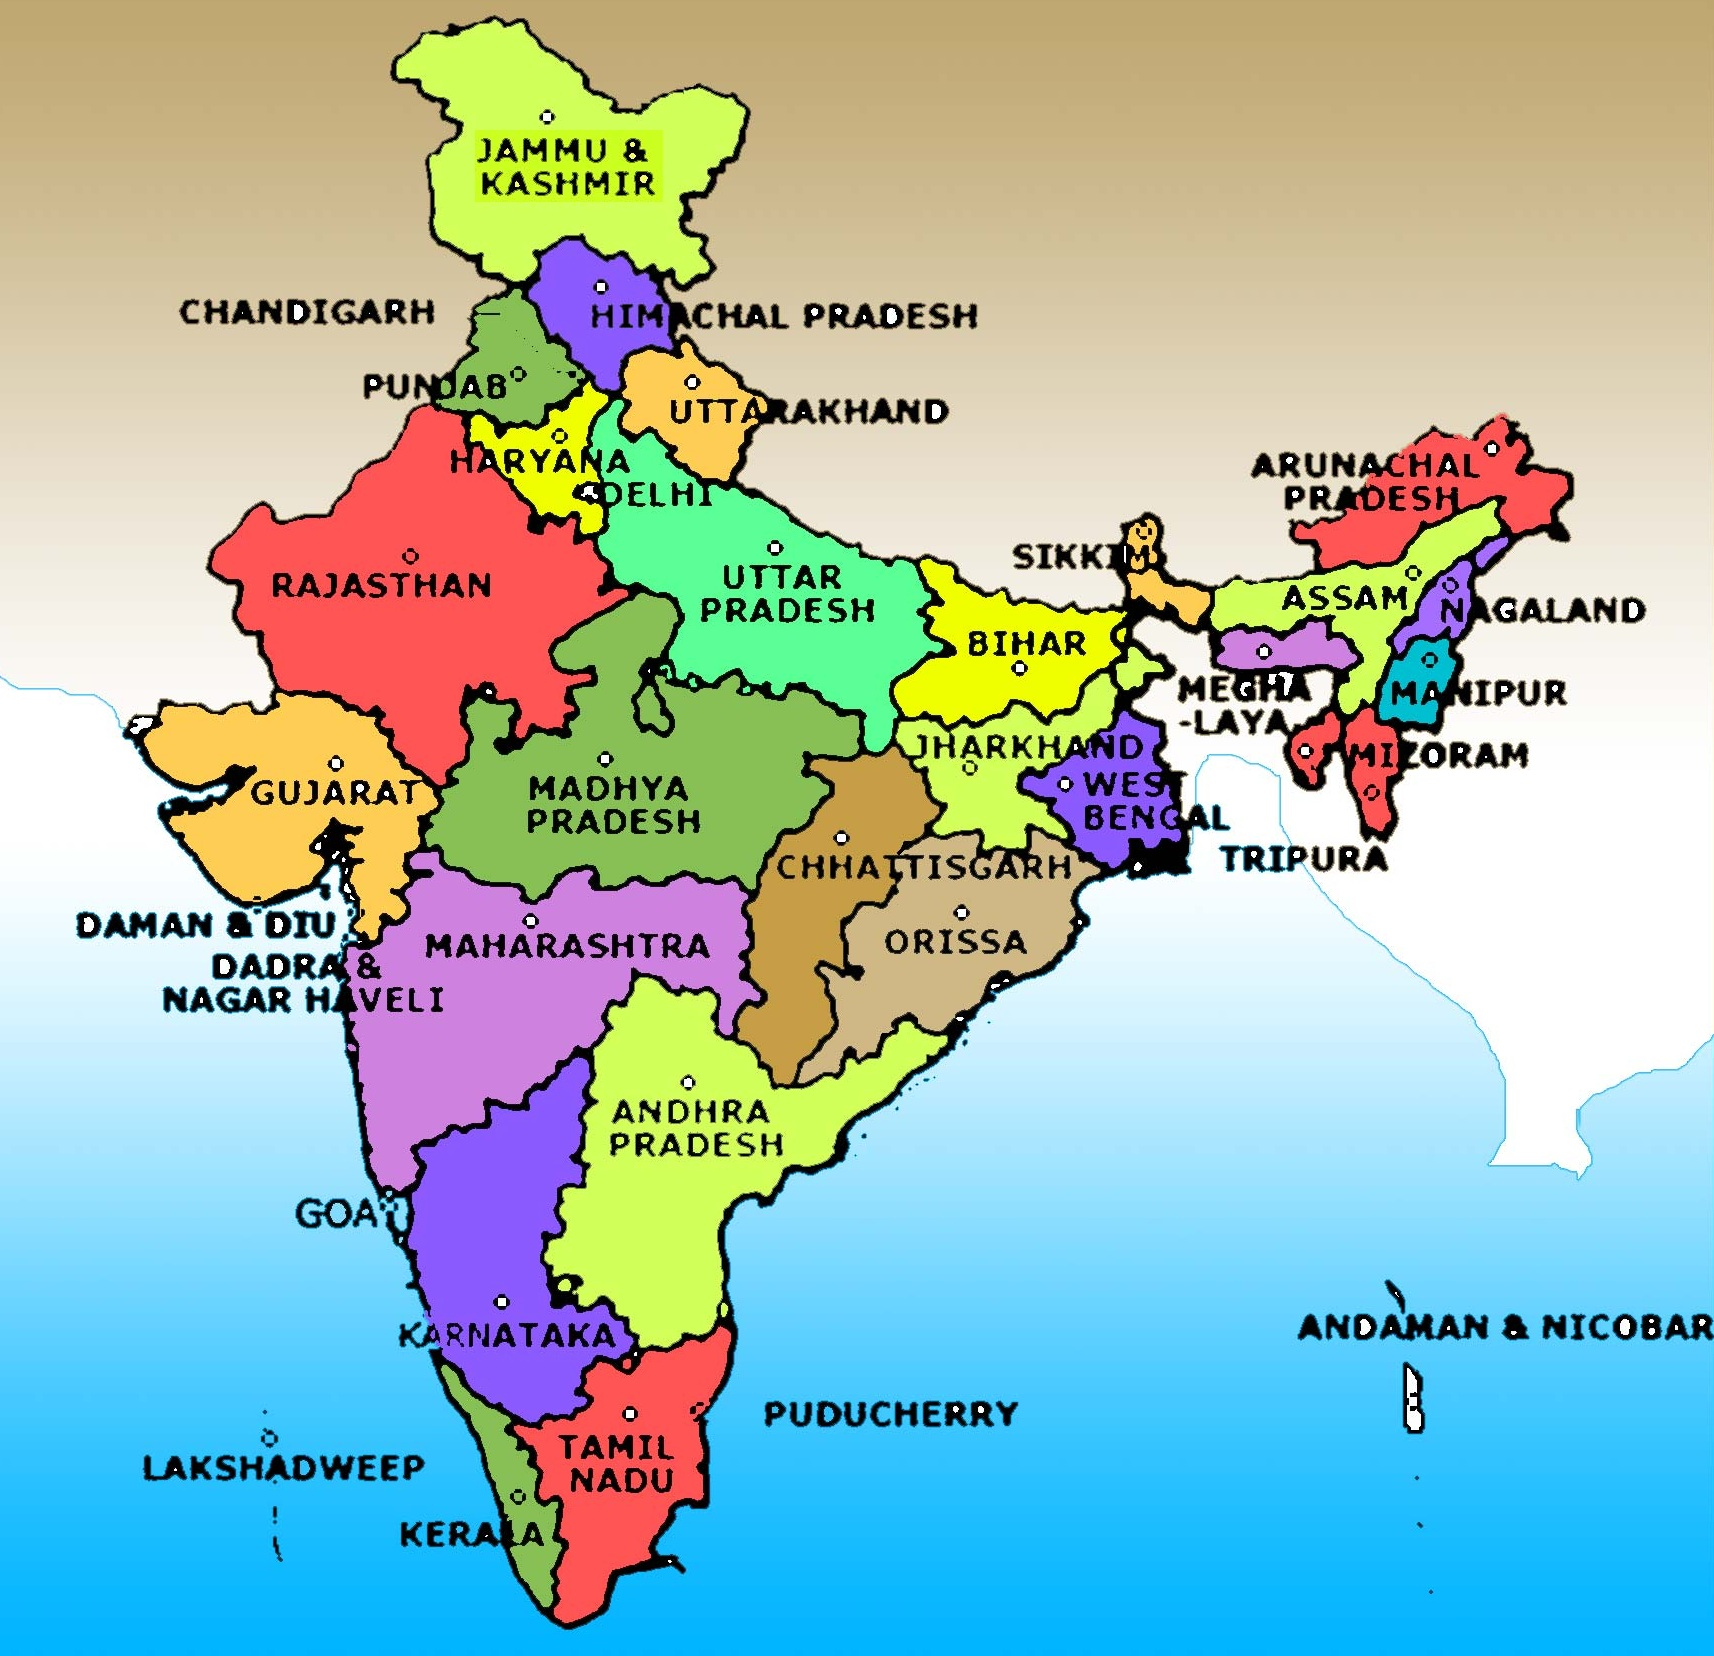 full size india map all state name 28 Beautiful India Map Full Size full size india map all state name